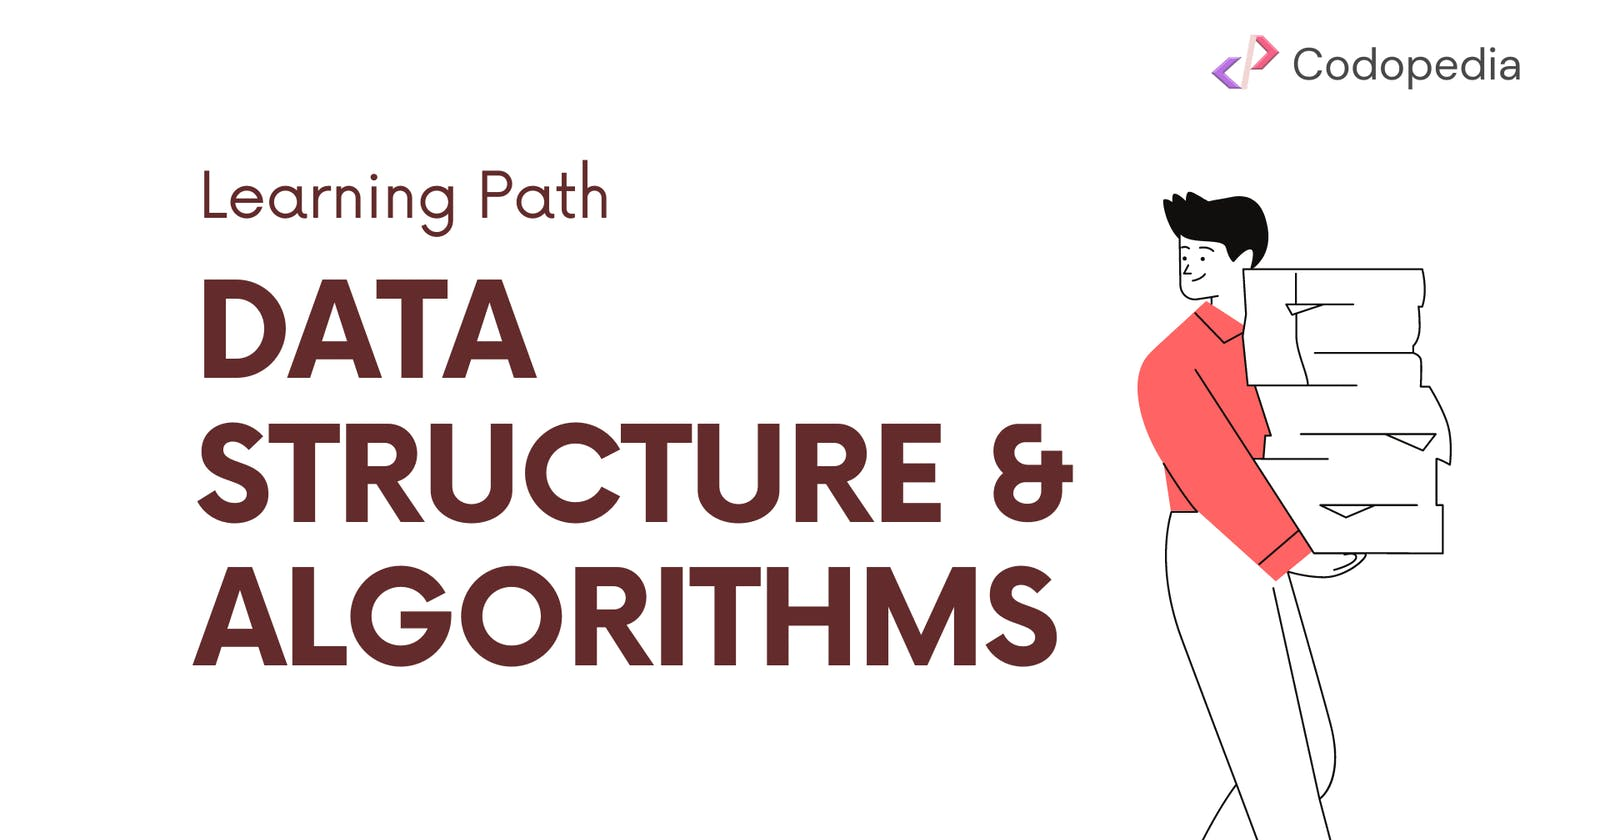 Learning Path : Data Structure & Algorithms